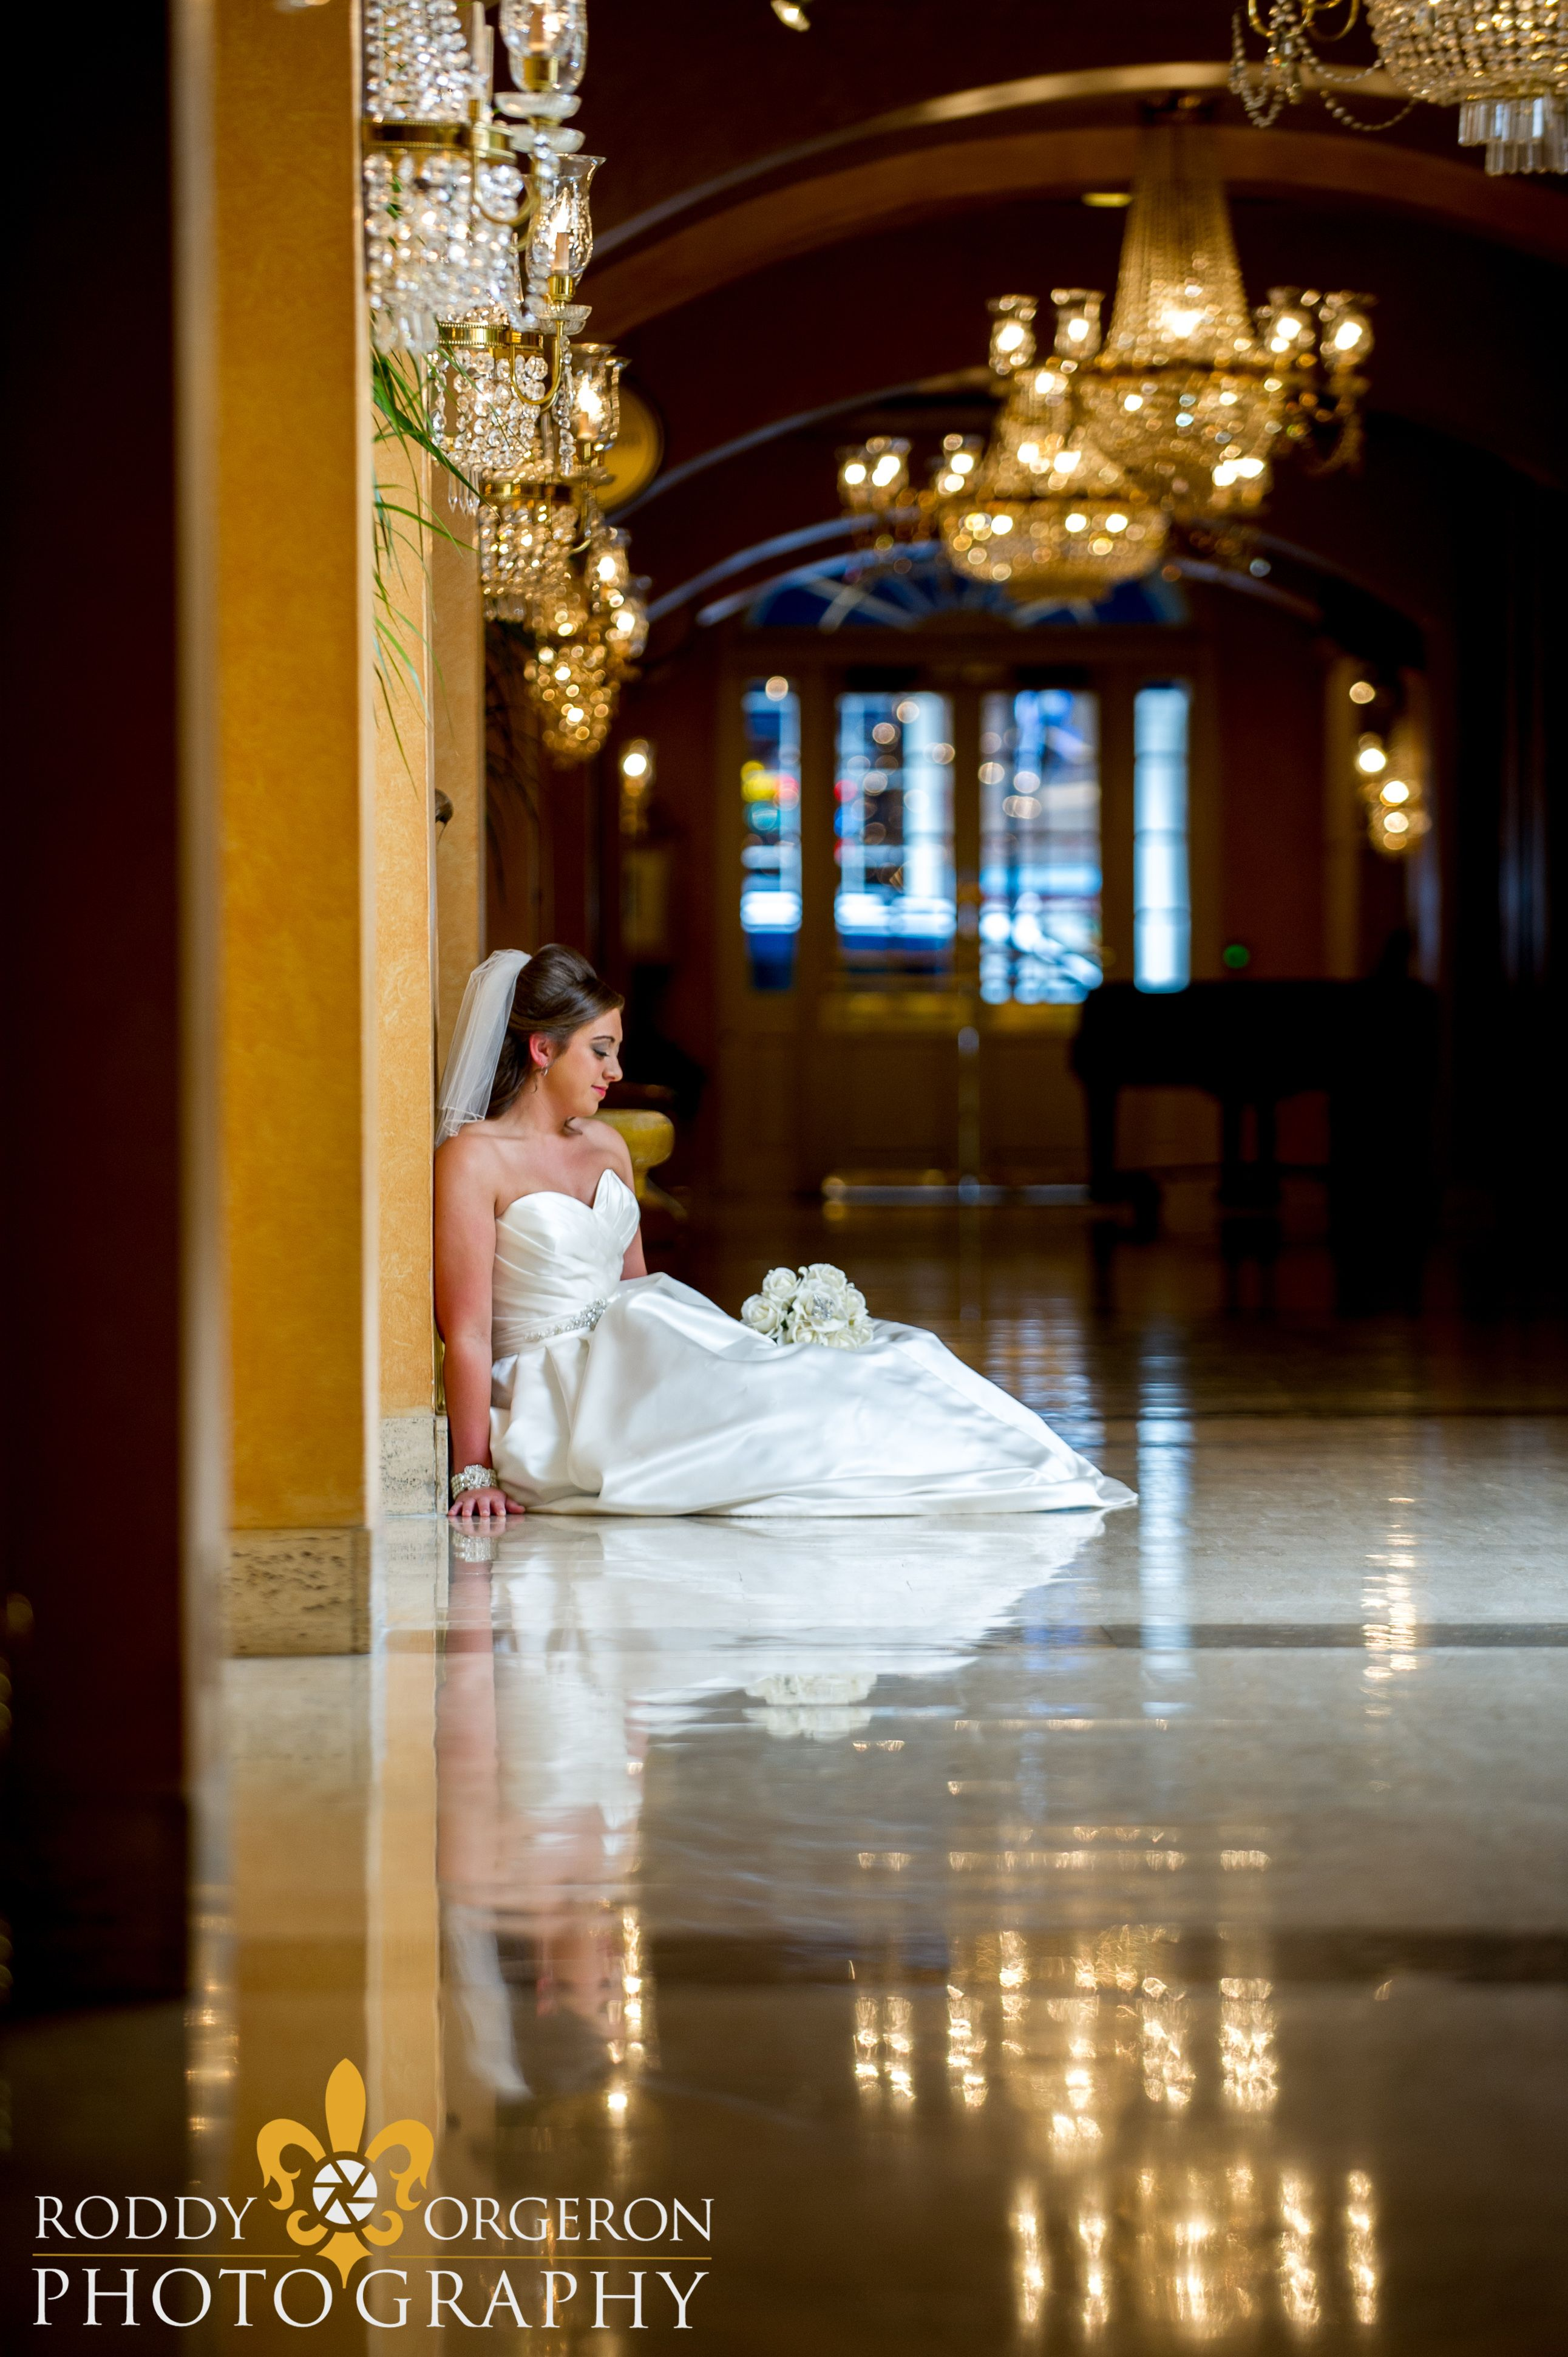 New Orleans Wedding Photographer Roddy Orgeron Photography New Orleans Wedding Wedding Photographers Photography